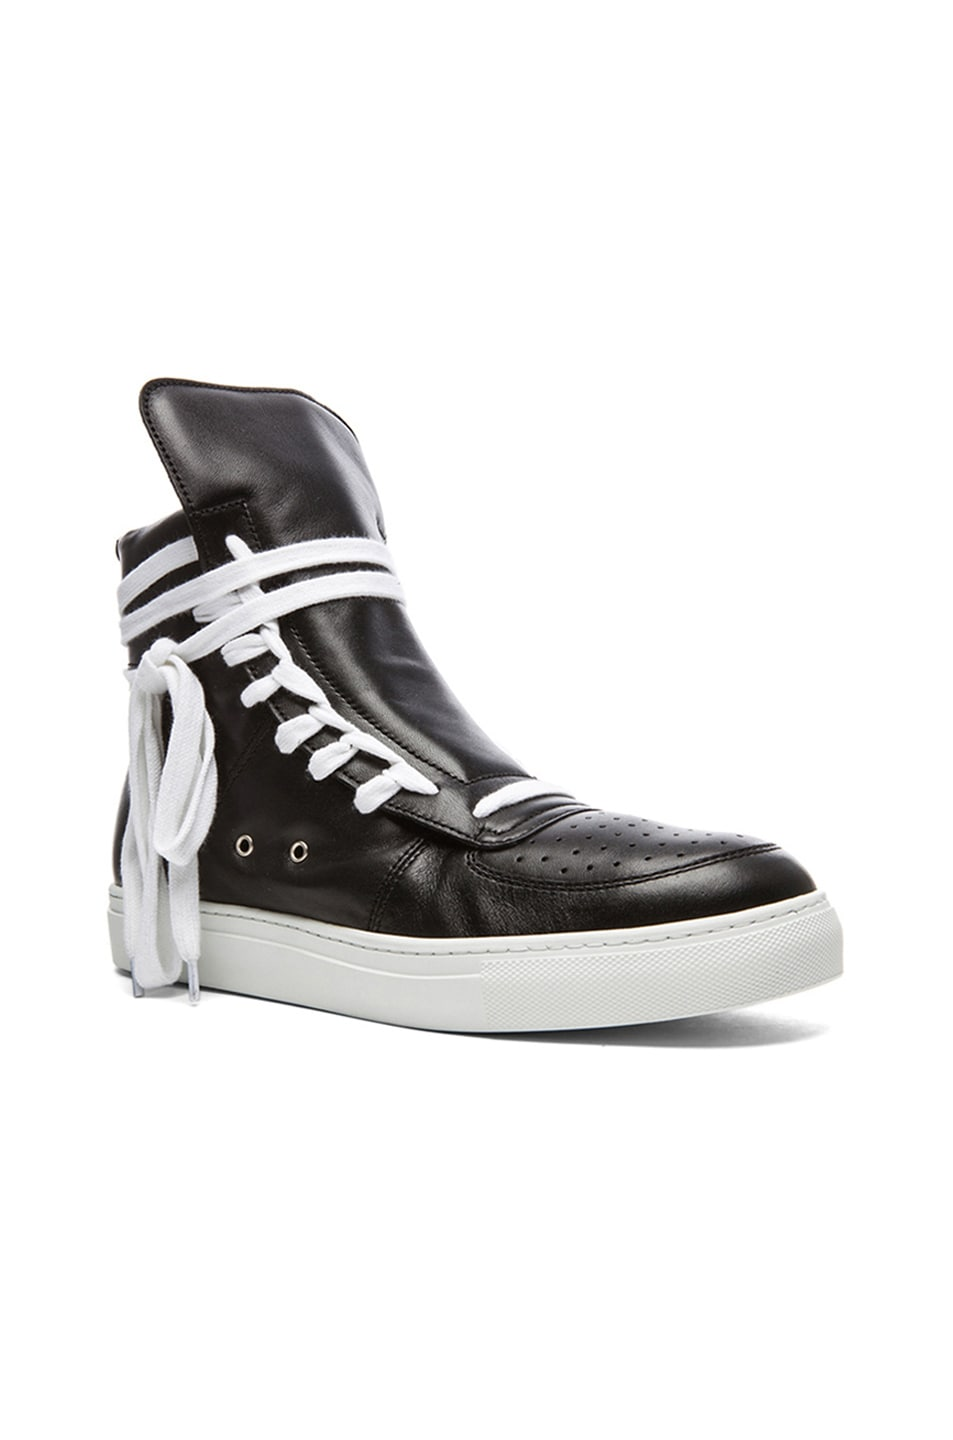 feaf03f38f Image 1 of Kris Van Assche Calfskin Leather High Top Sneakers in Black    White